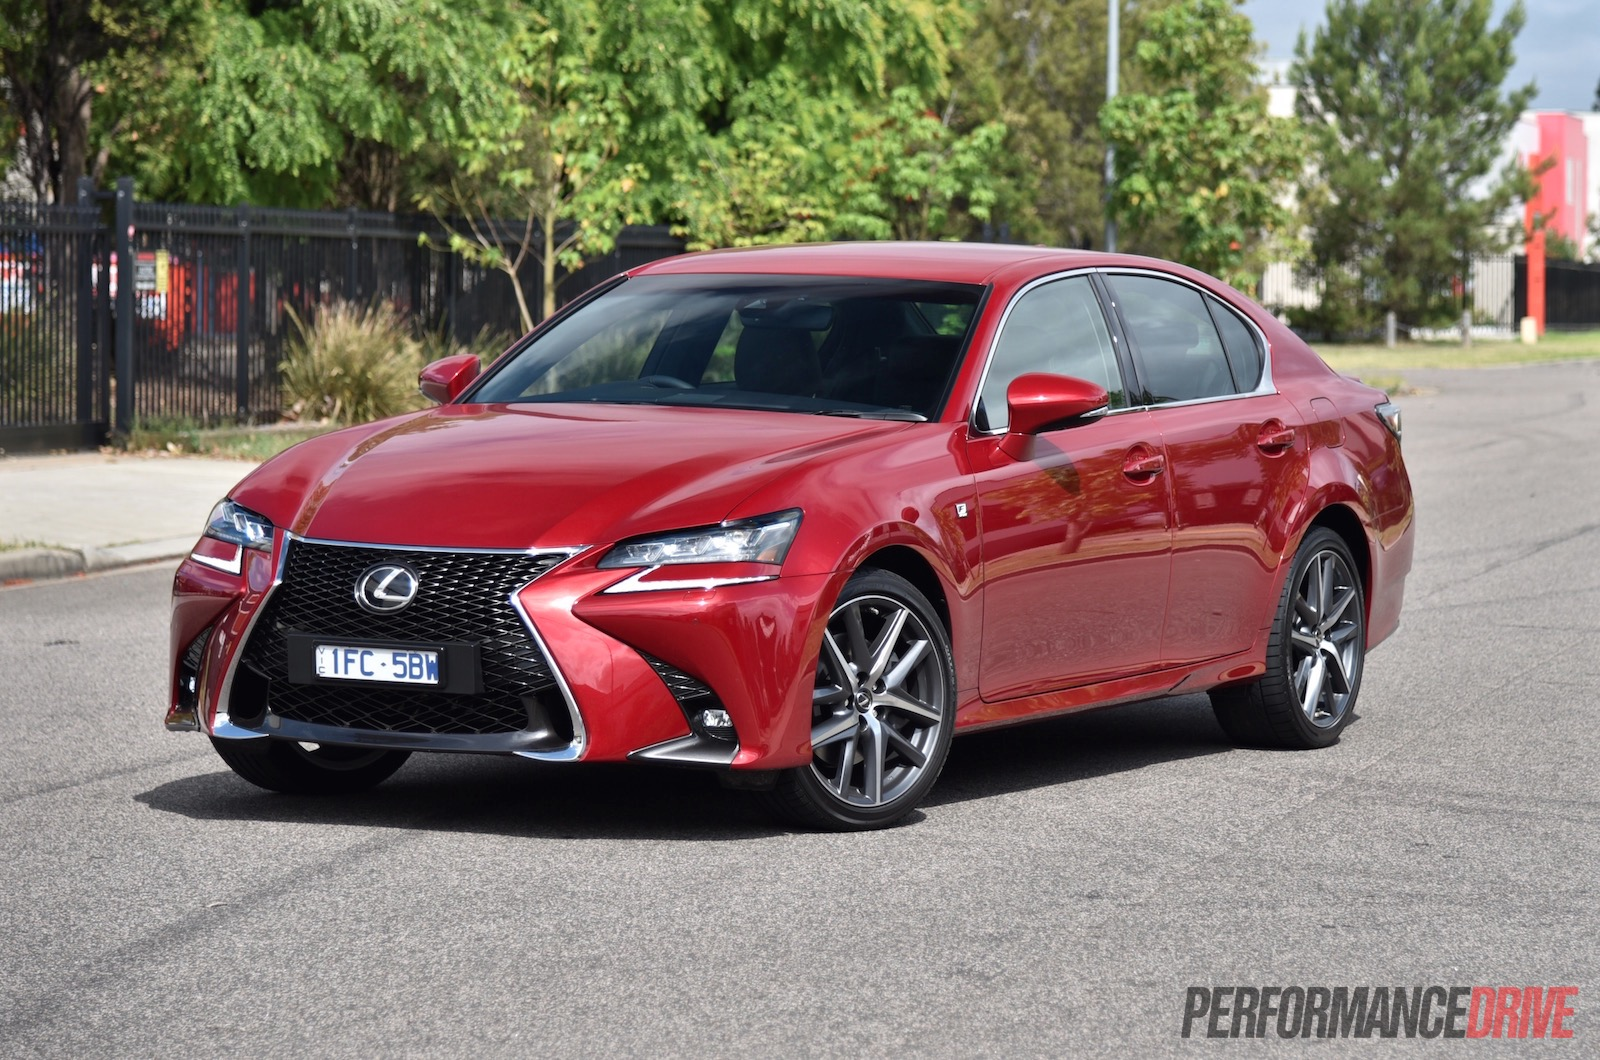 2016 lexus gs 200t f sport review video performancedrive. Black Bedroom Furniture Sets. Home Design Ideas